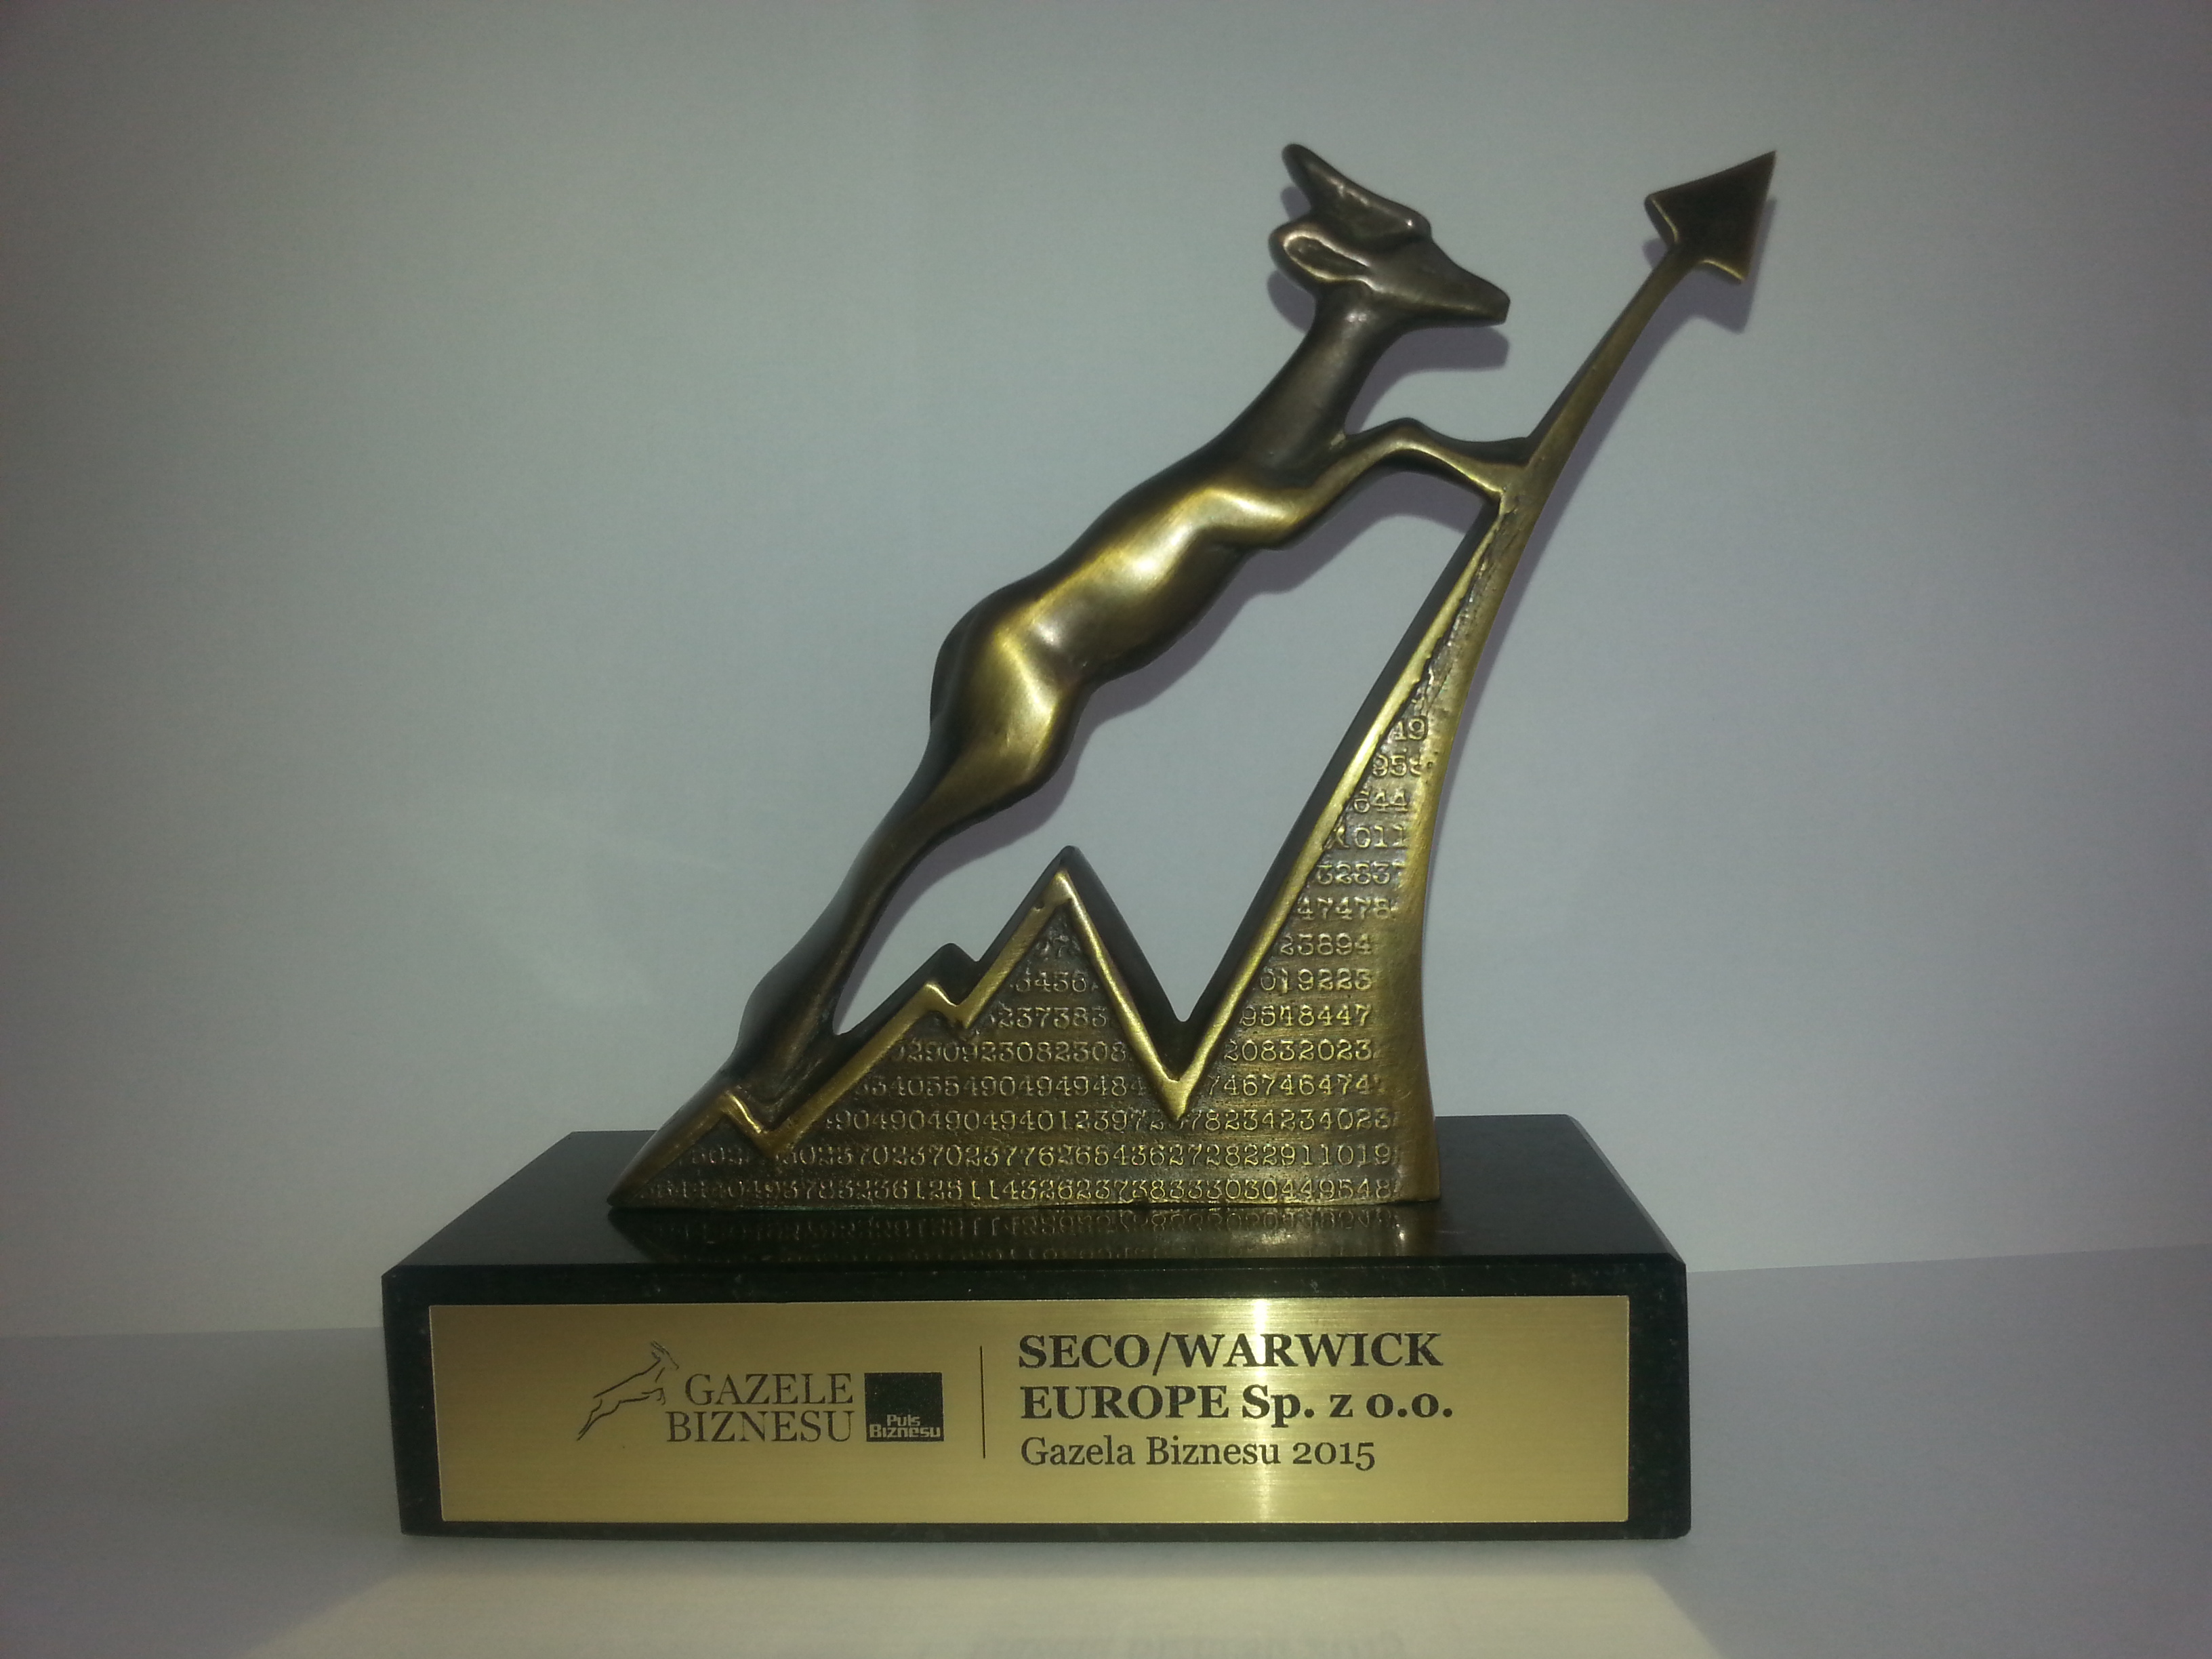 "SECO/WARWICK wins ""The Gazelles of Business"" again"